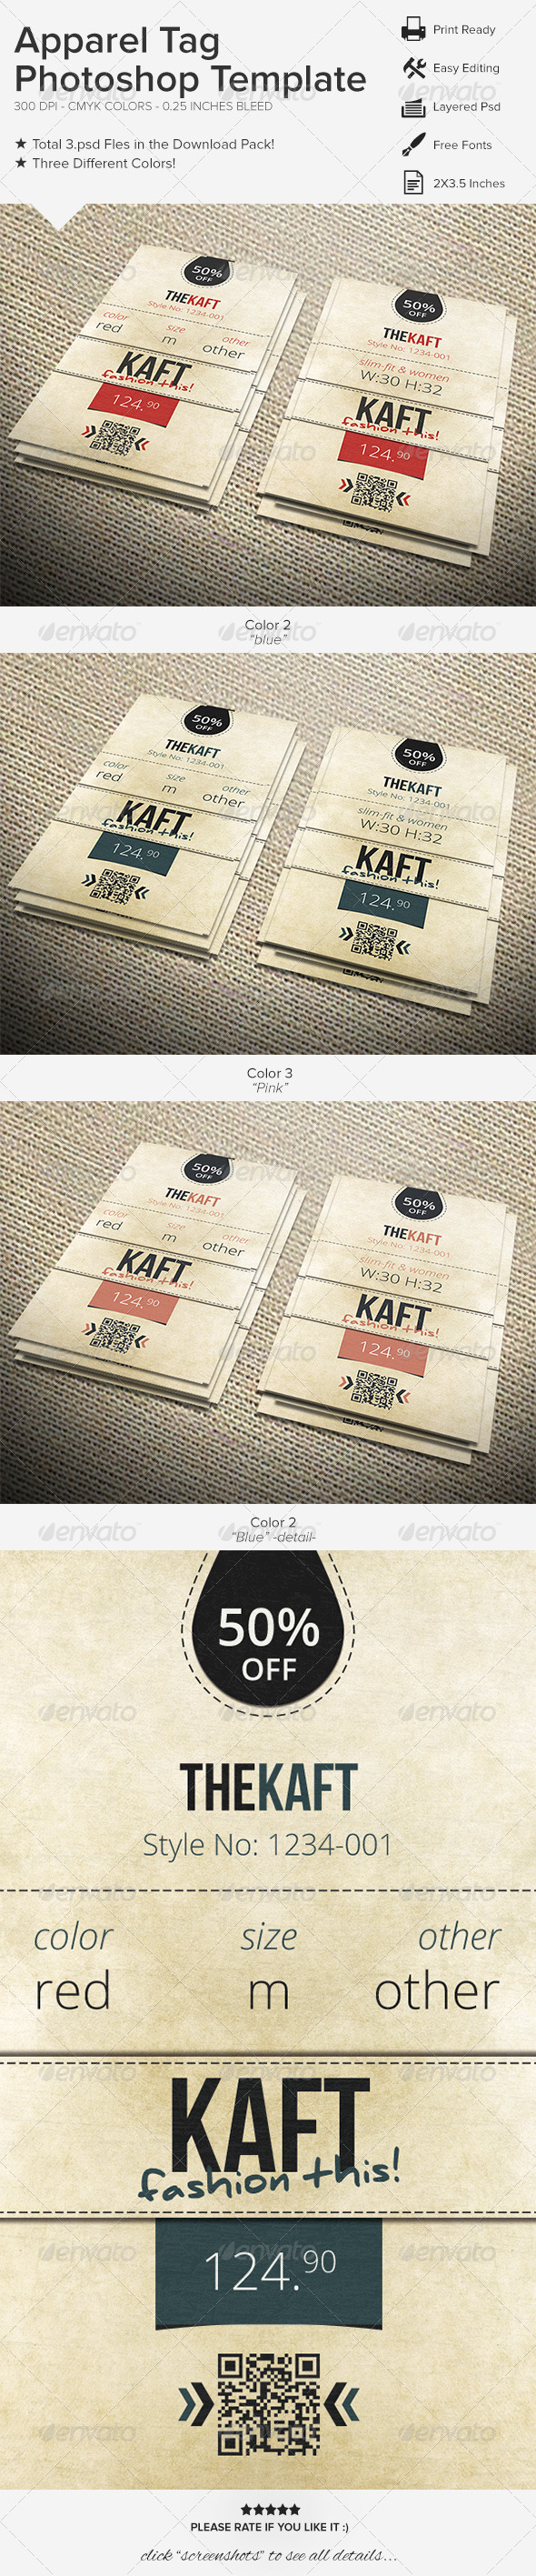 GraphicRiver Apparel Tag Photoshop Template 6398003